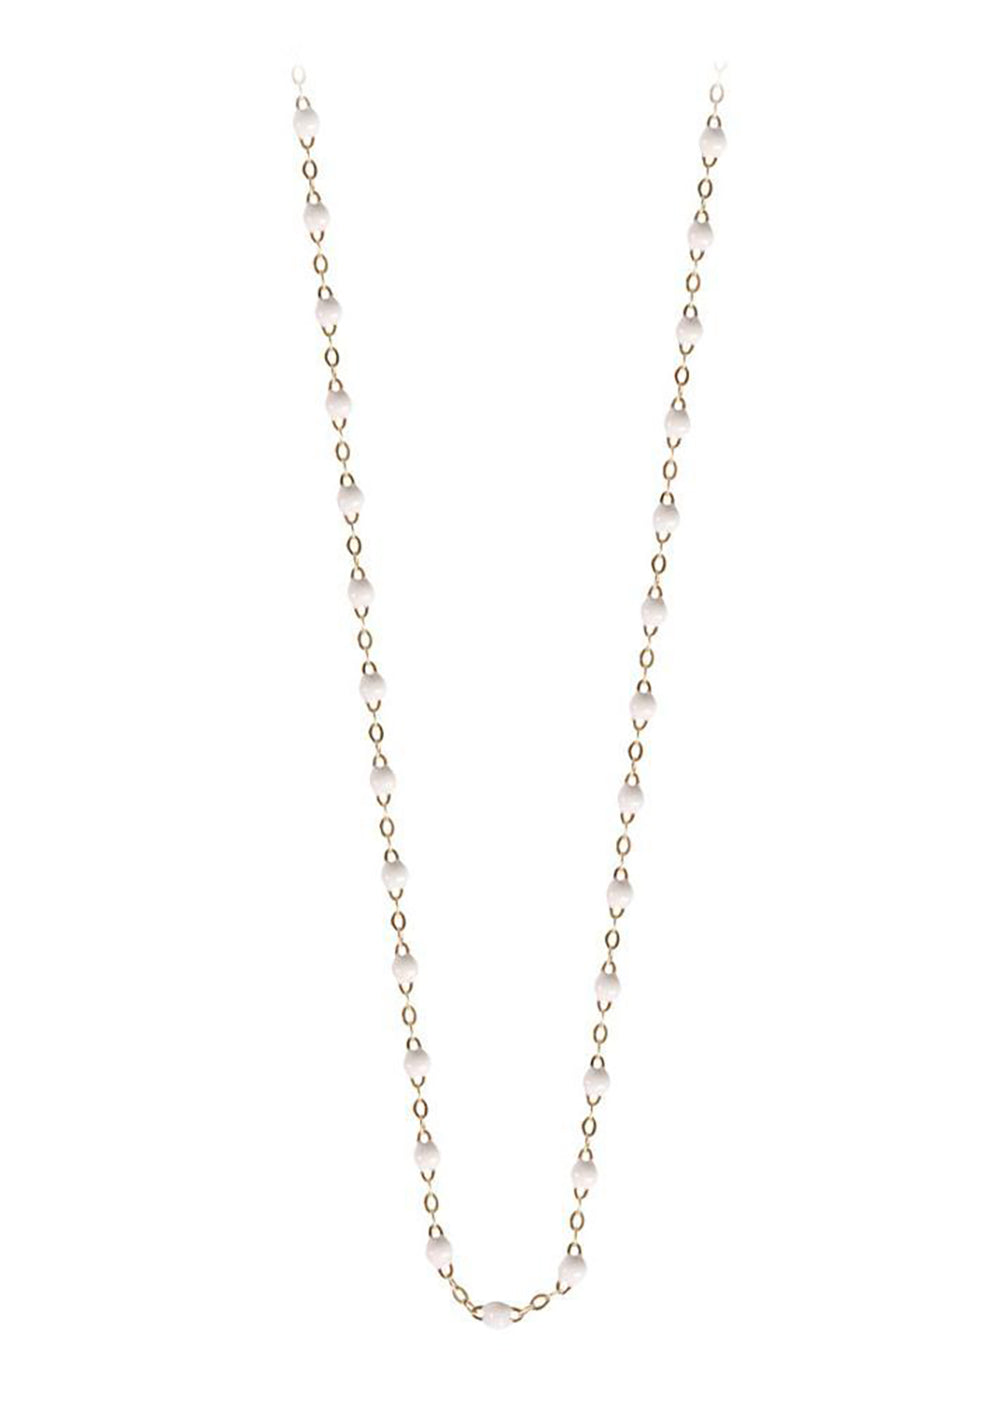 gigiCLOZEAU Jewlery - classic gigi necklace White |18k gold